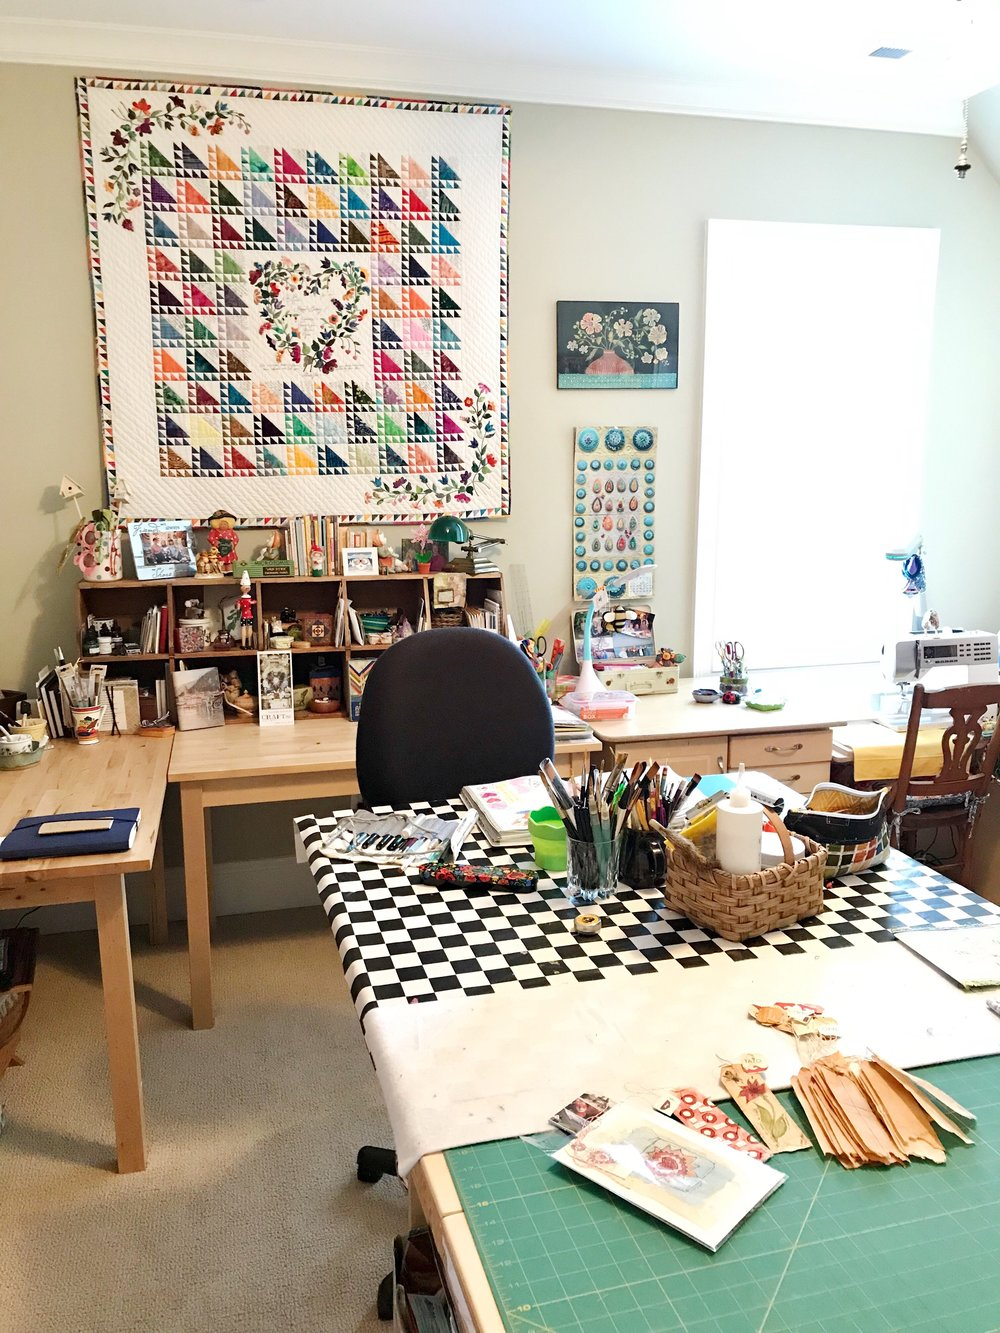 Susie's craft and art room